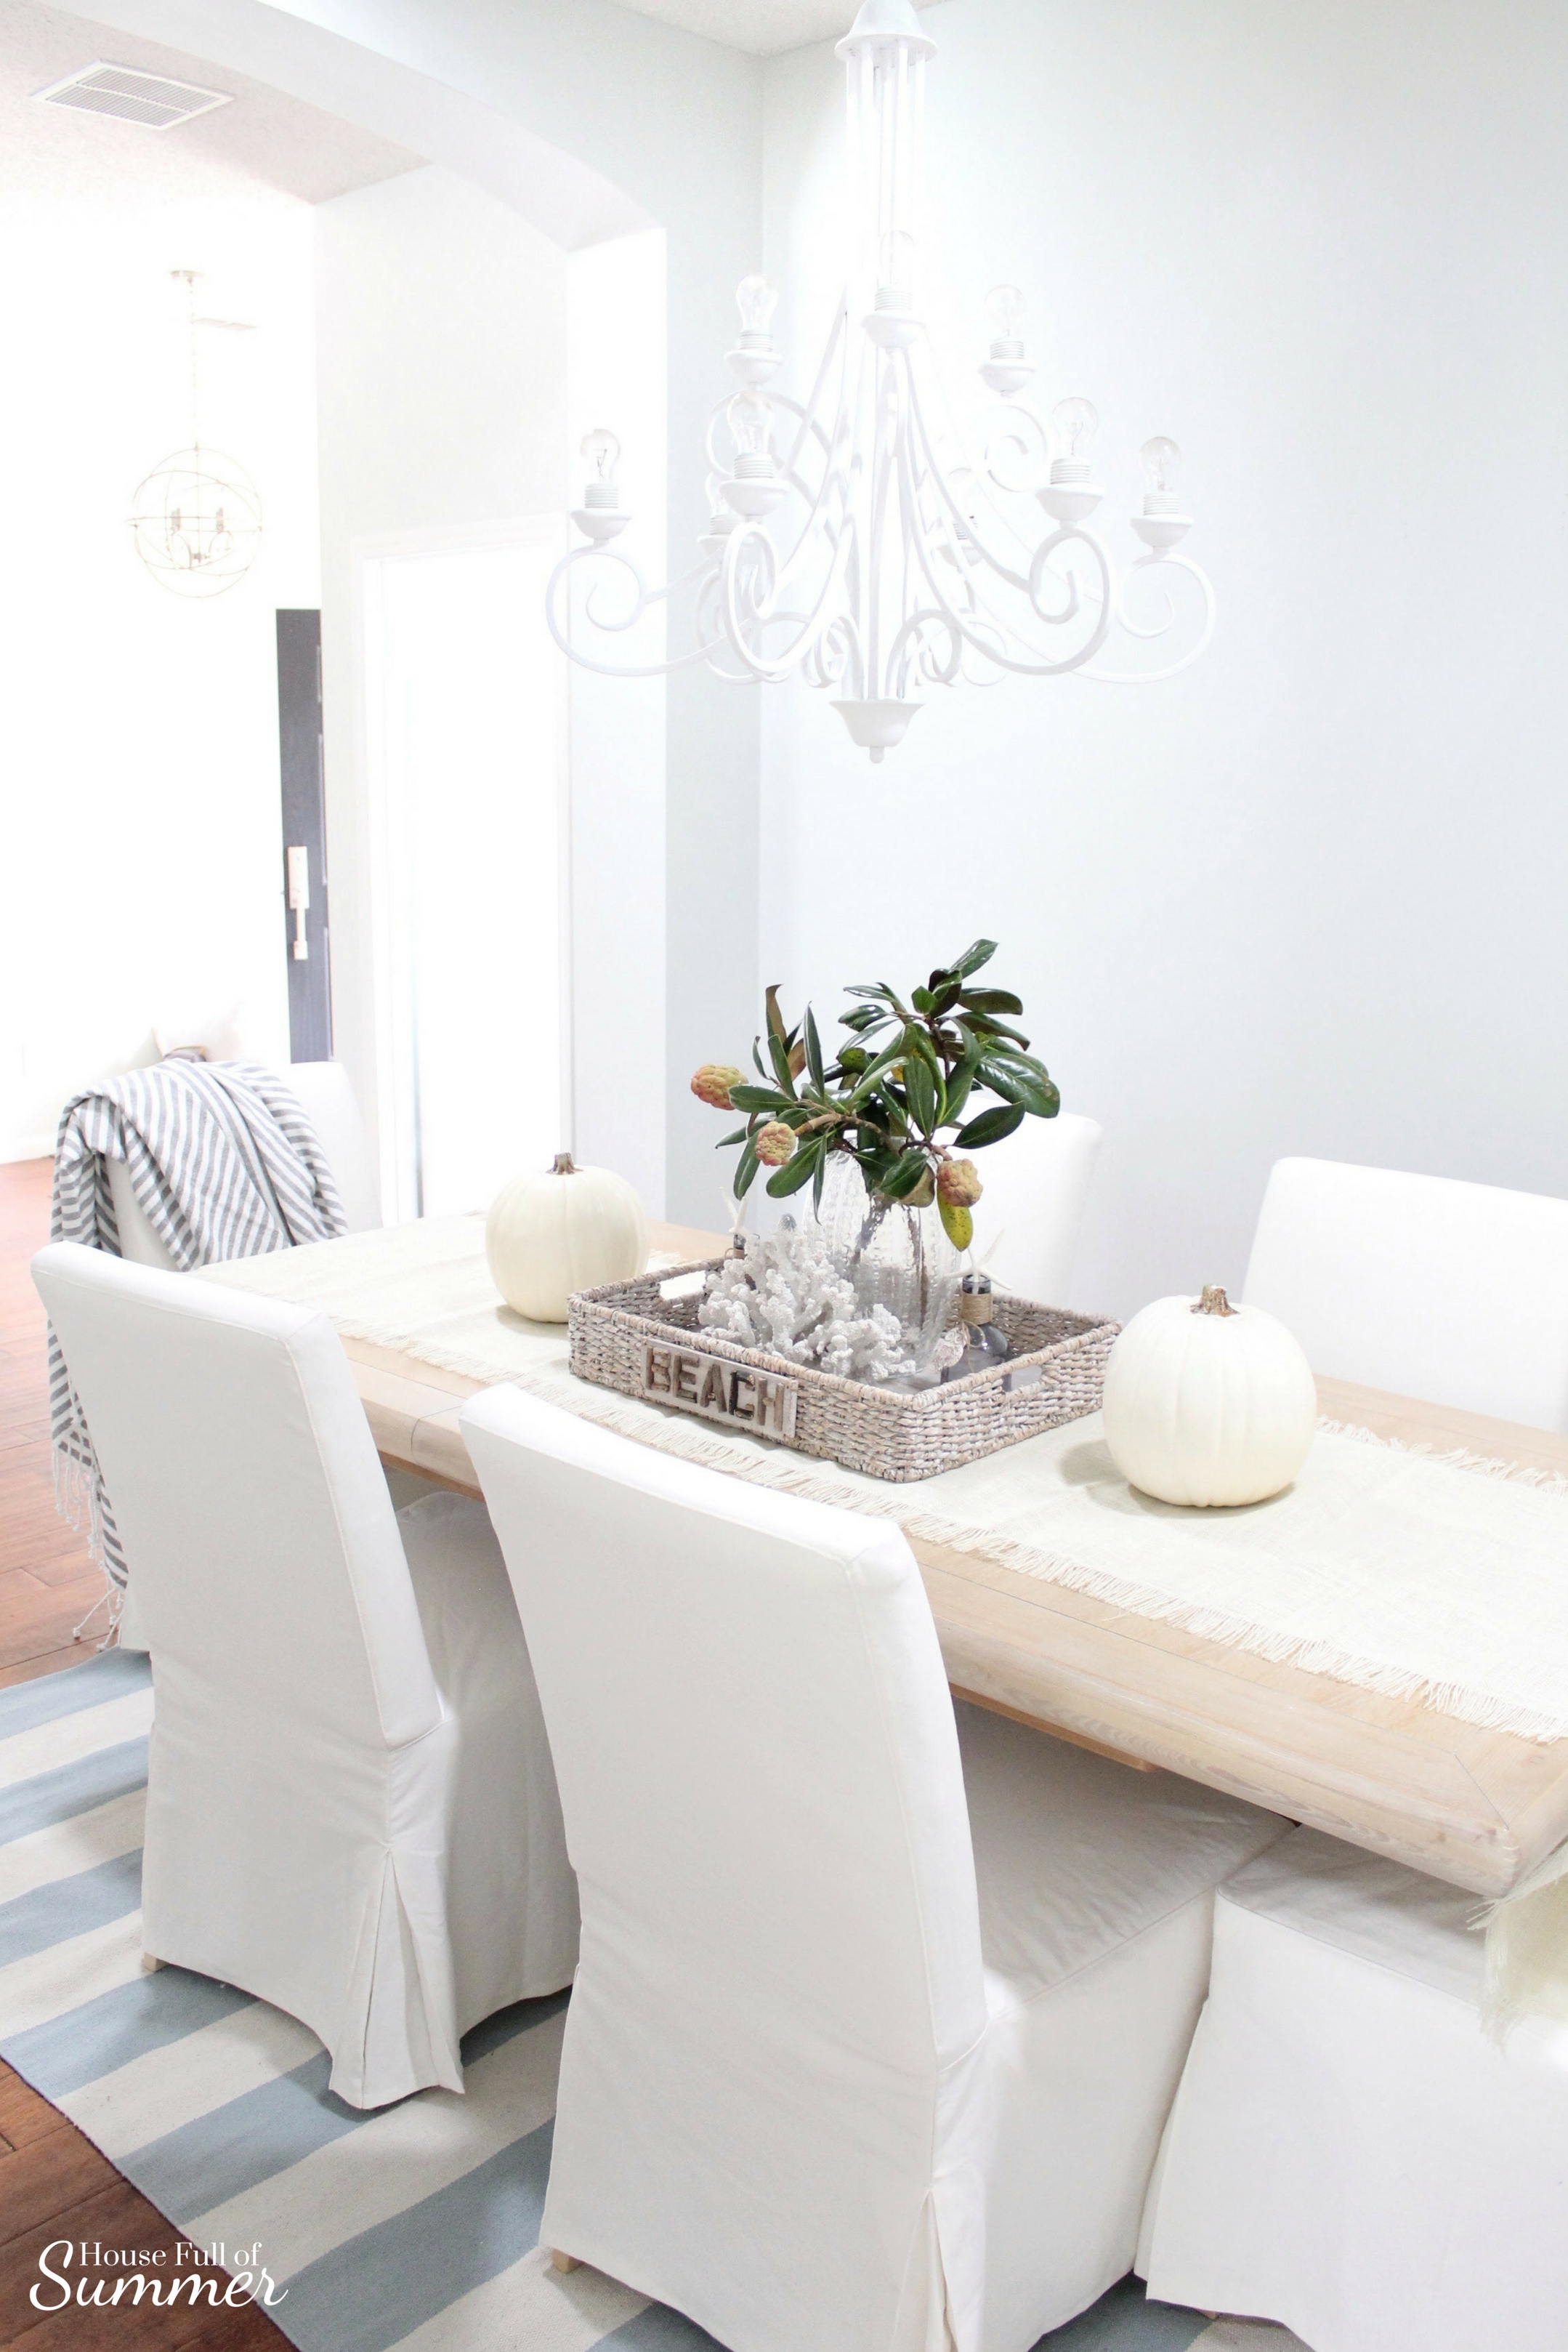 House Full of Summer: Fall Home Tour Blog Hop - Cozy, Coastal, Chic Dining Room, pottery barn style, beachy decor, coral, starfish, magnolia leaves, tray styling ideas, table decor, diy ideas, white chandelier, painted chandelier, chalk paint, striped rug, jute